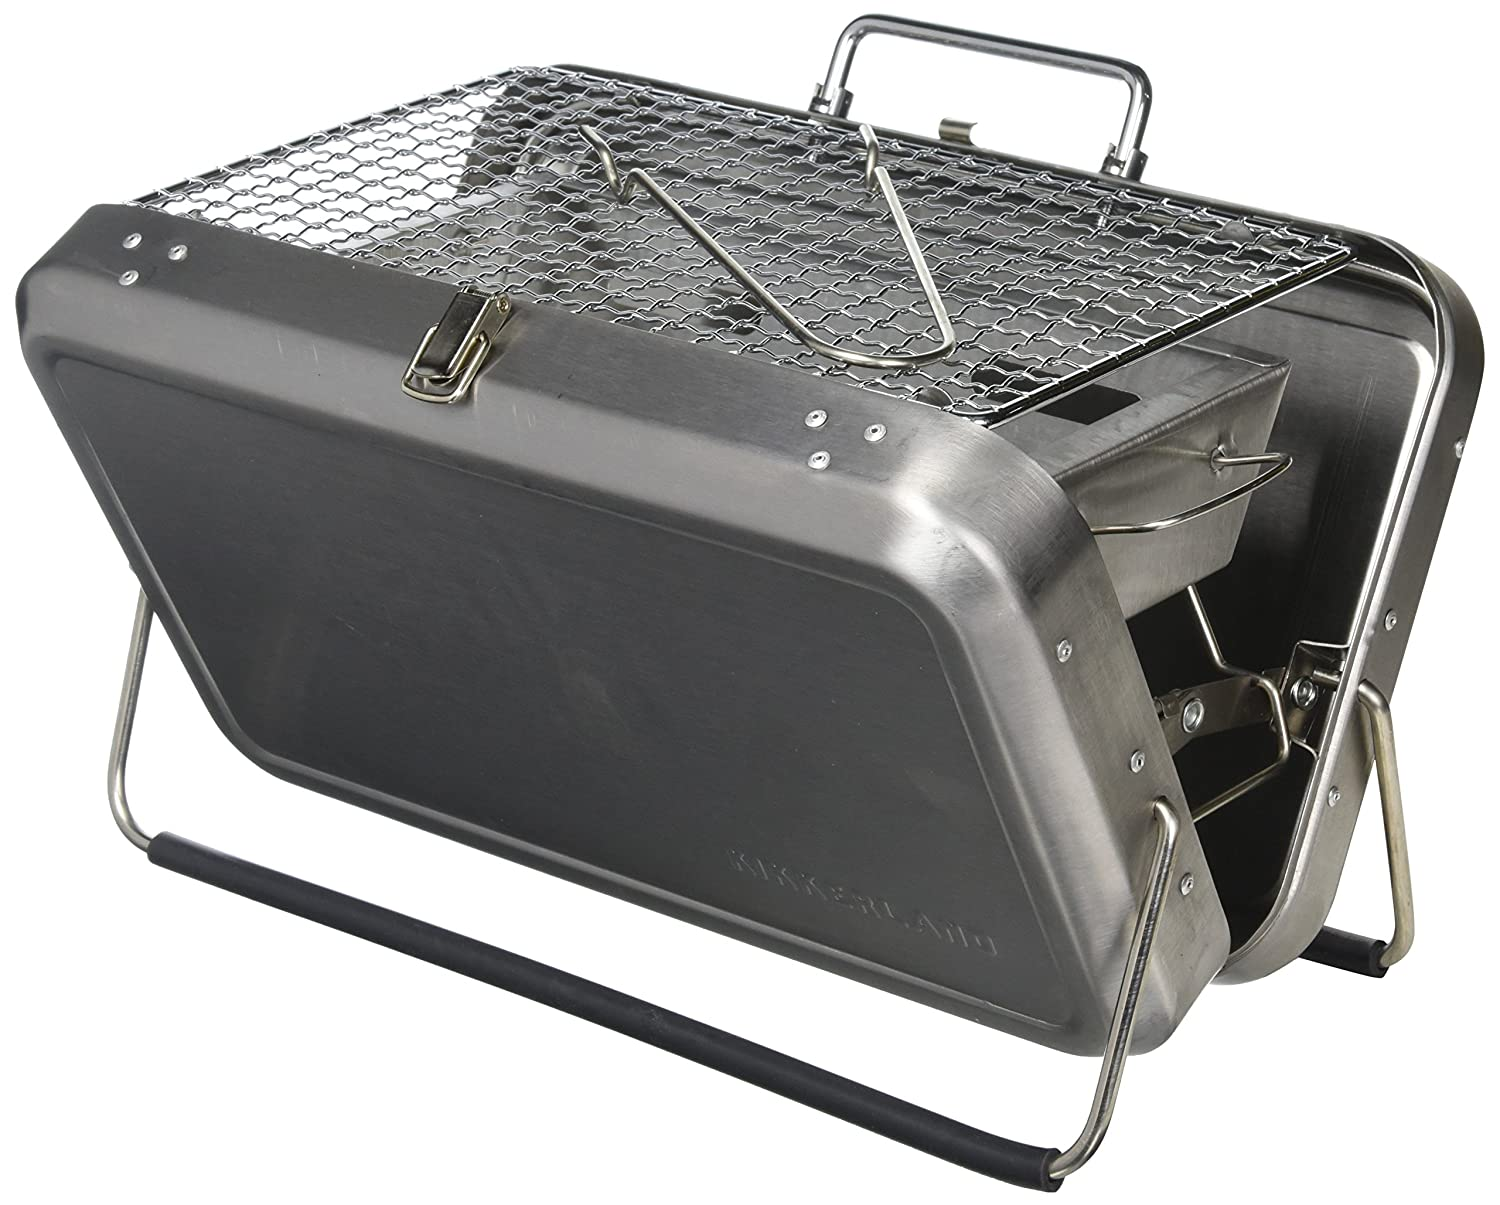 Kikkerland Stainless Steel Portable BBQ Suitcase, Silver BQ01